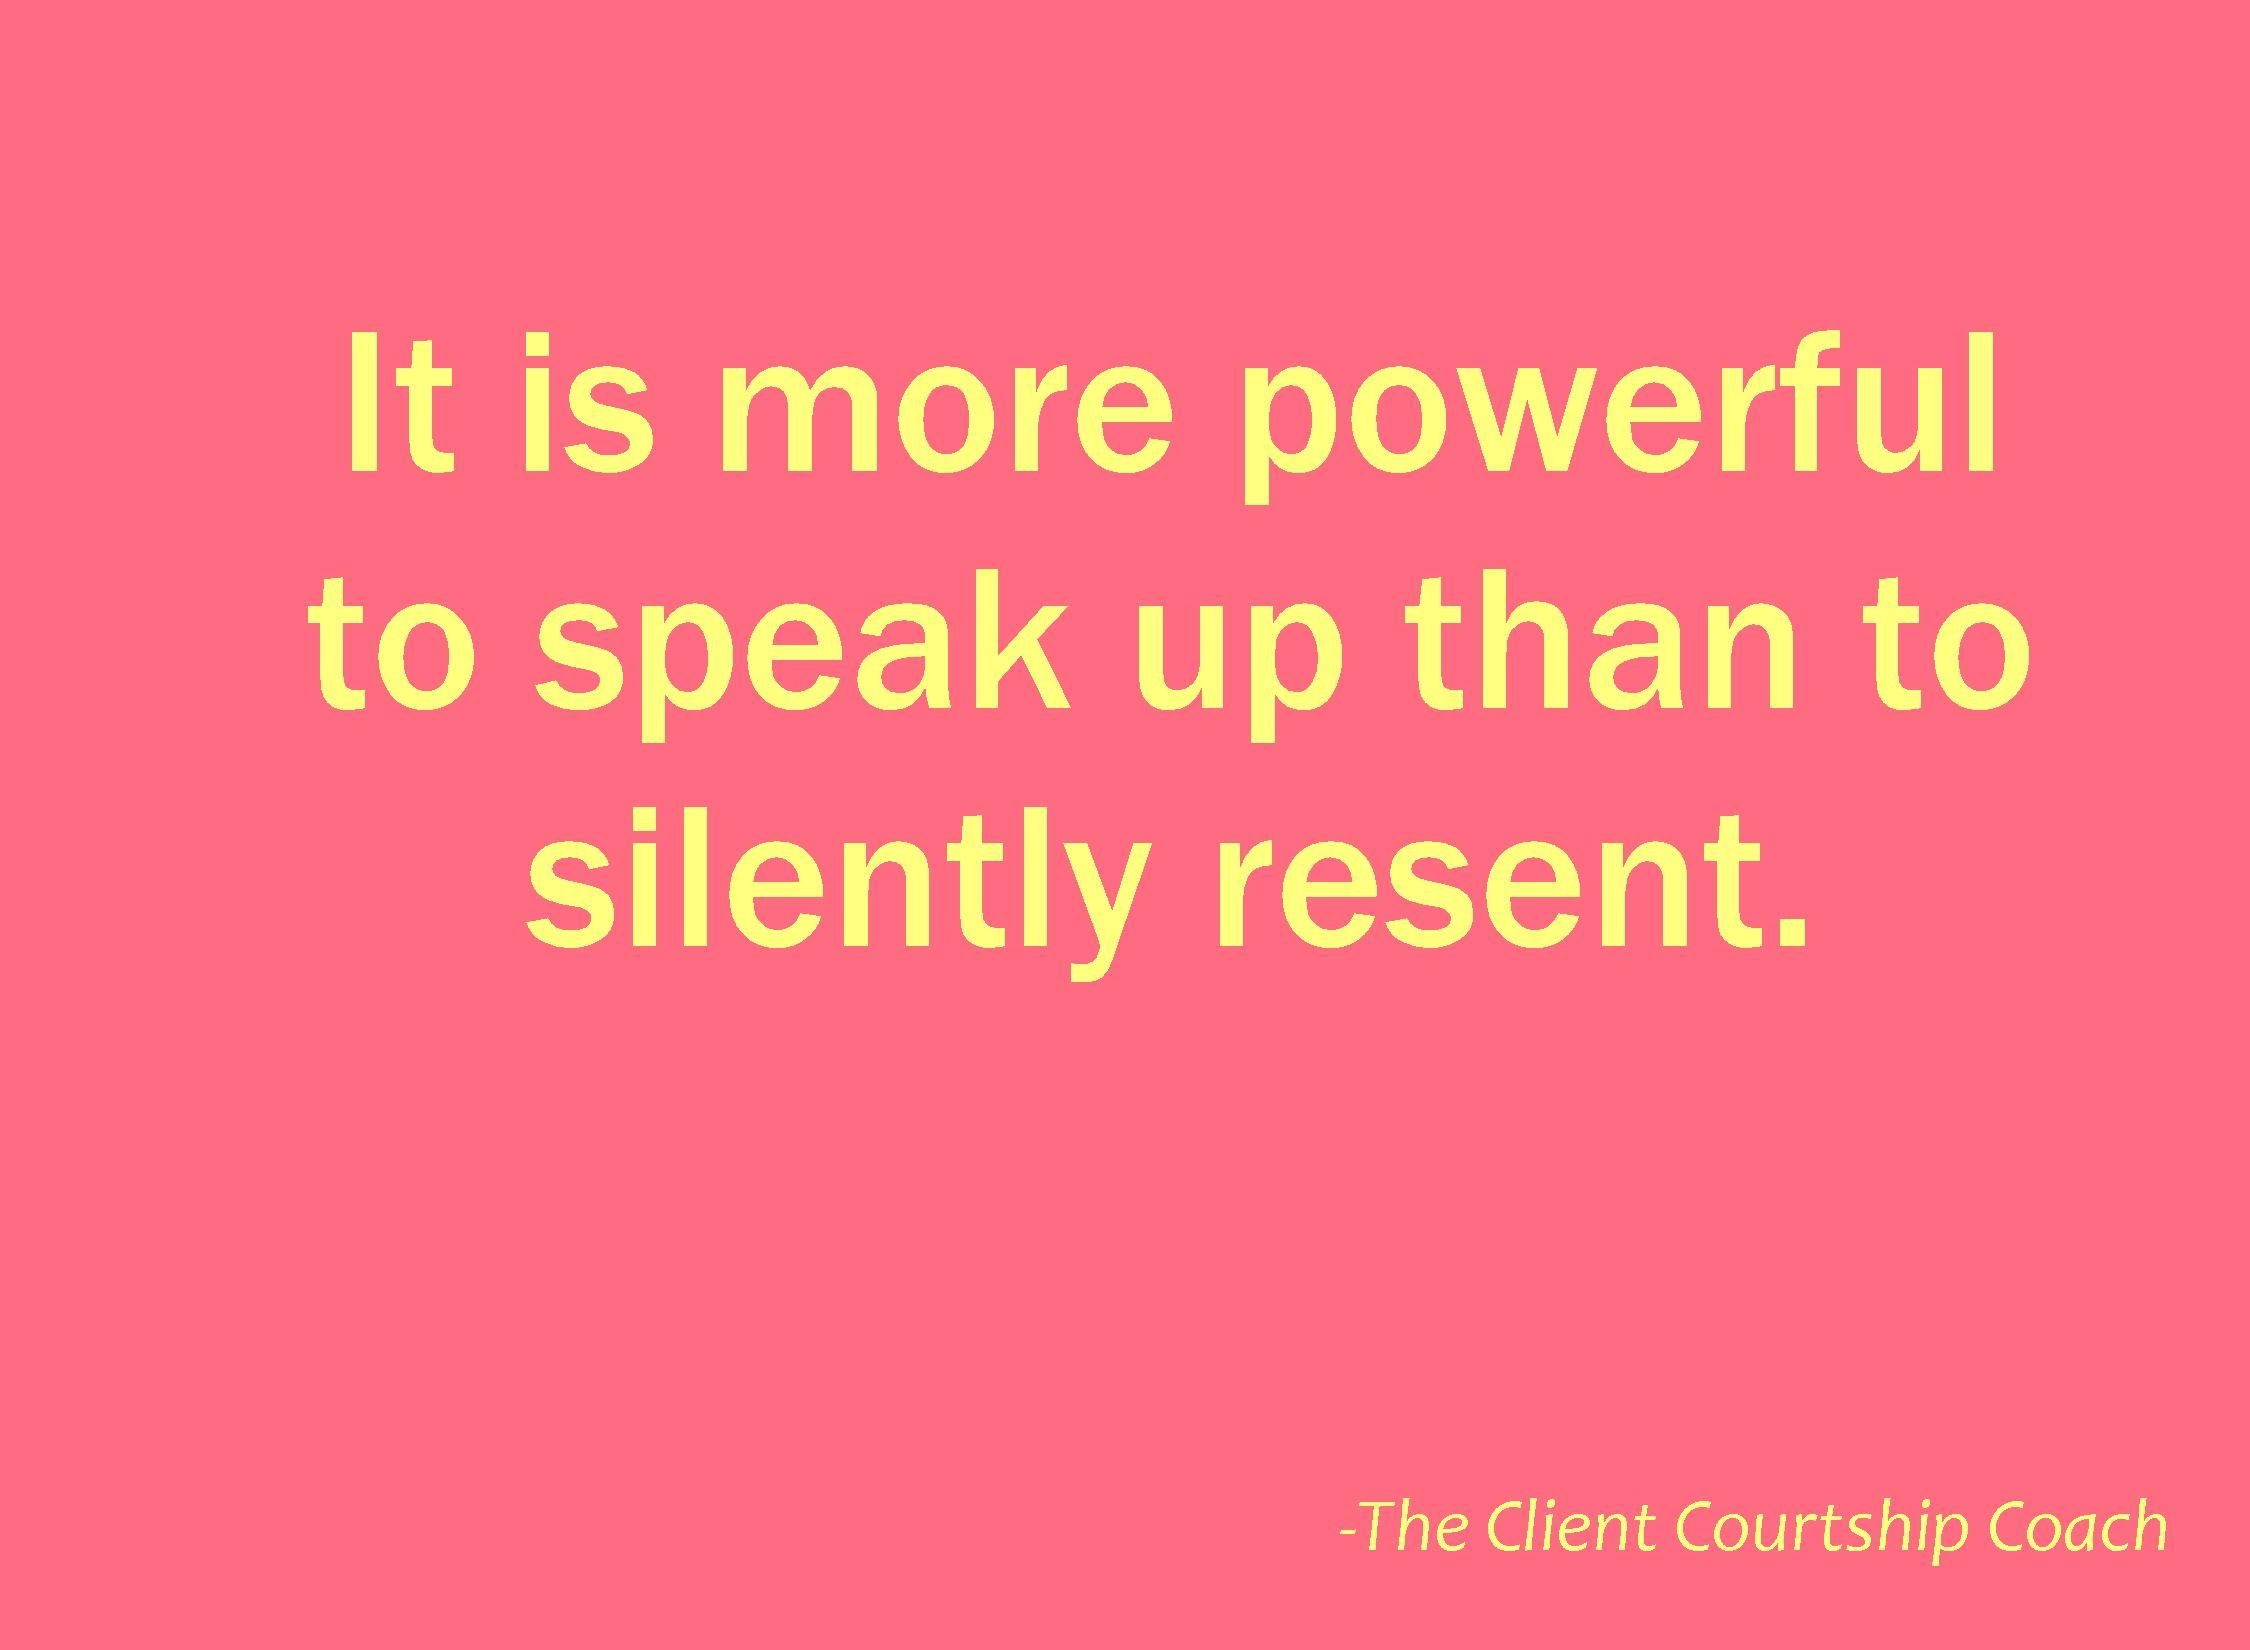 Speak Up Quotes It is more powerful to speak up than to silently resent  Speak Up Quotes